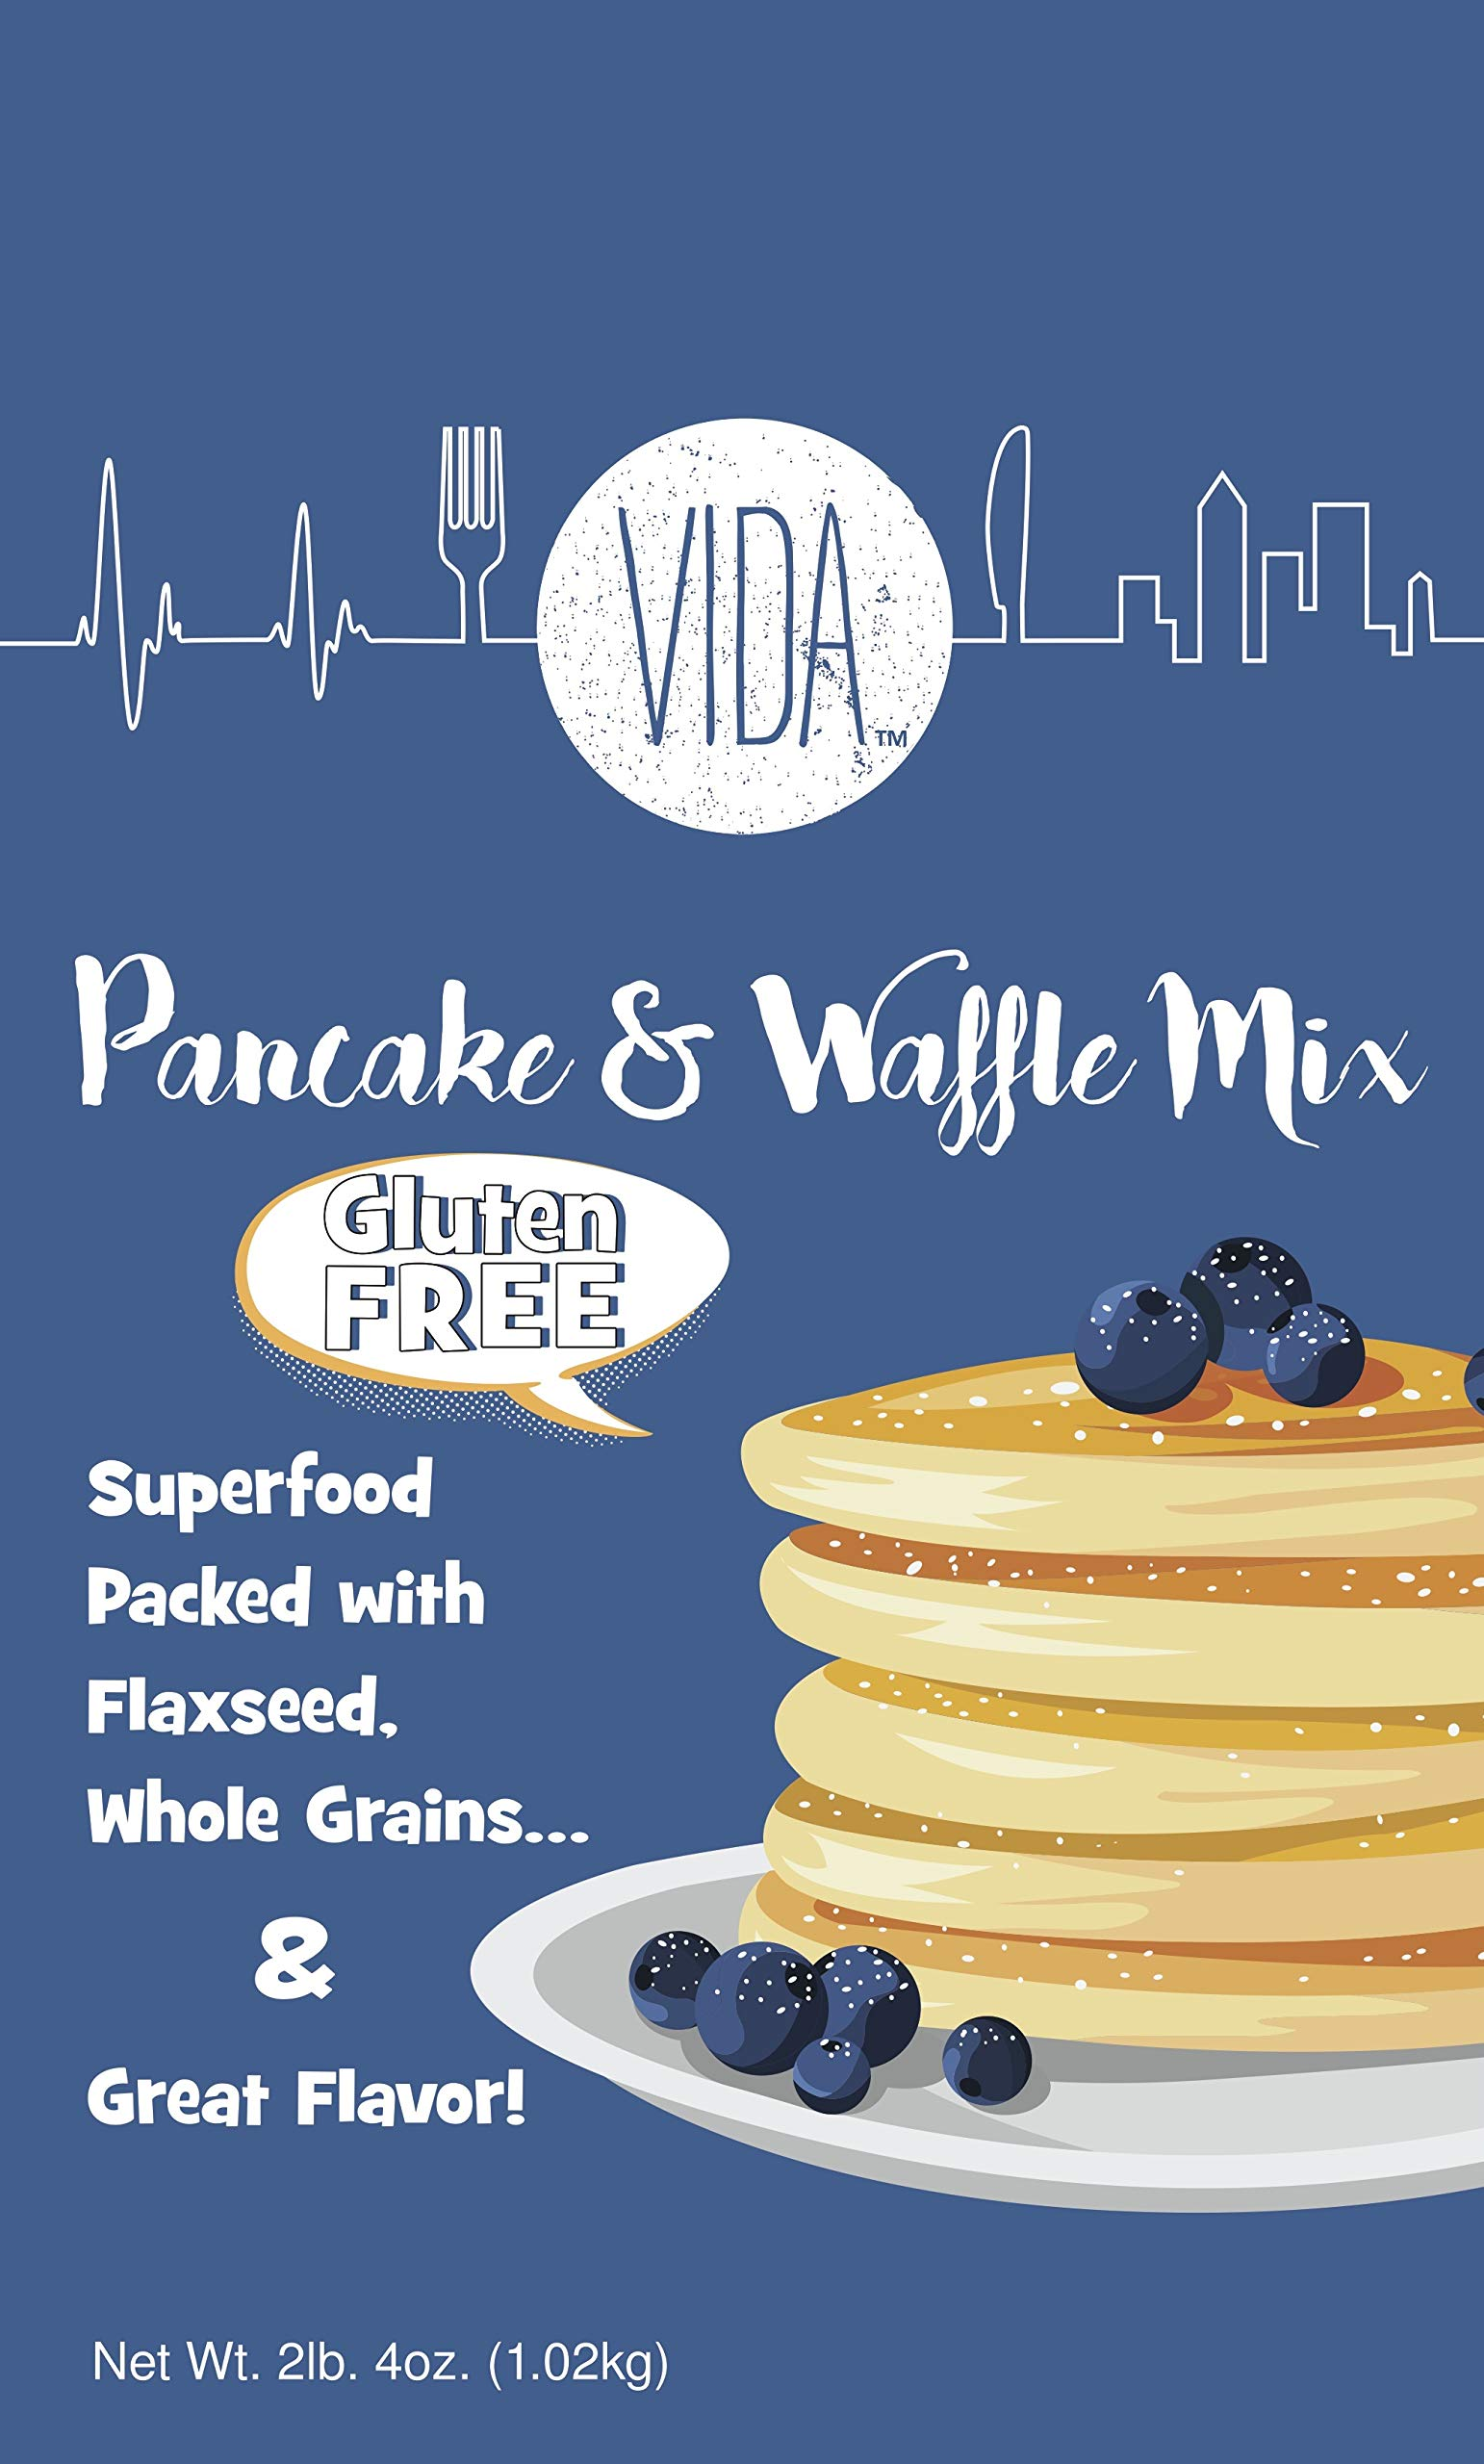 Gluten-Free Pancake and Waffle Mix 2lb. 4oz. (Pack of 2), Superfood, Made with Flaxseed, Oat and Brown Rice Flour, High Fiber and High Protein, Cholesterol-Free, Whole Grain by Vida. Soy-Free by Vida